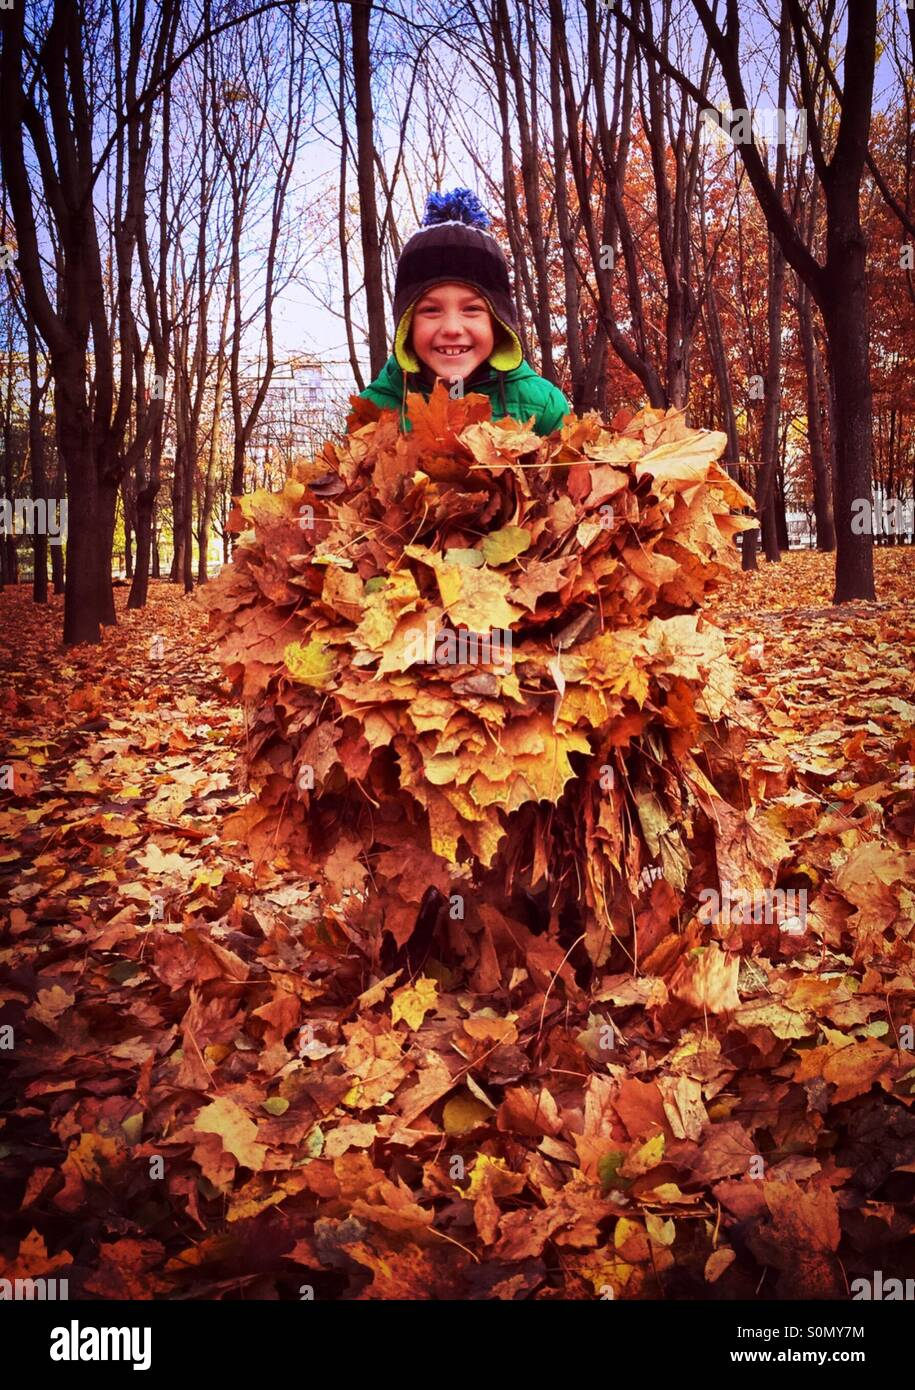 Boy play with leaves - Stock Image